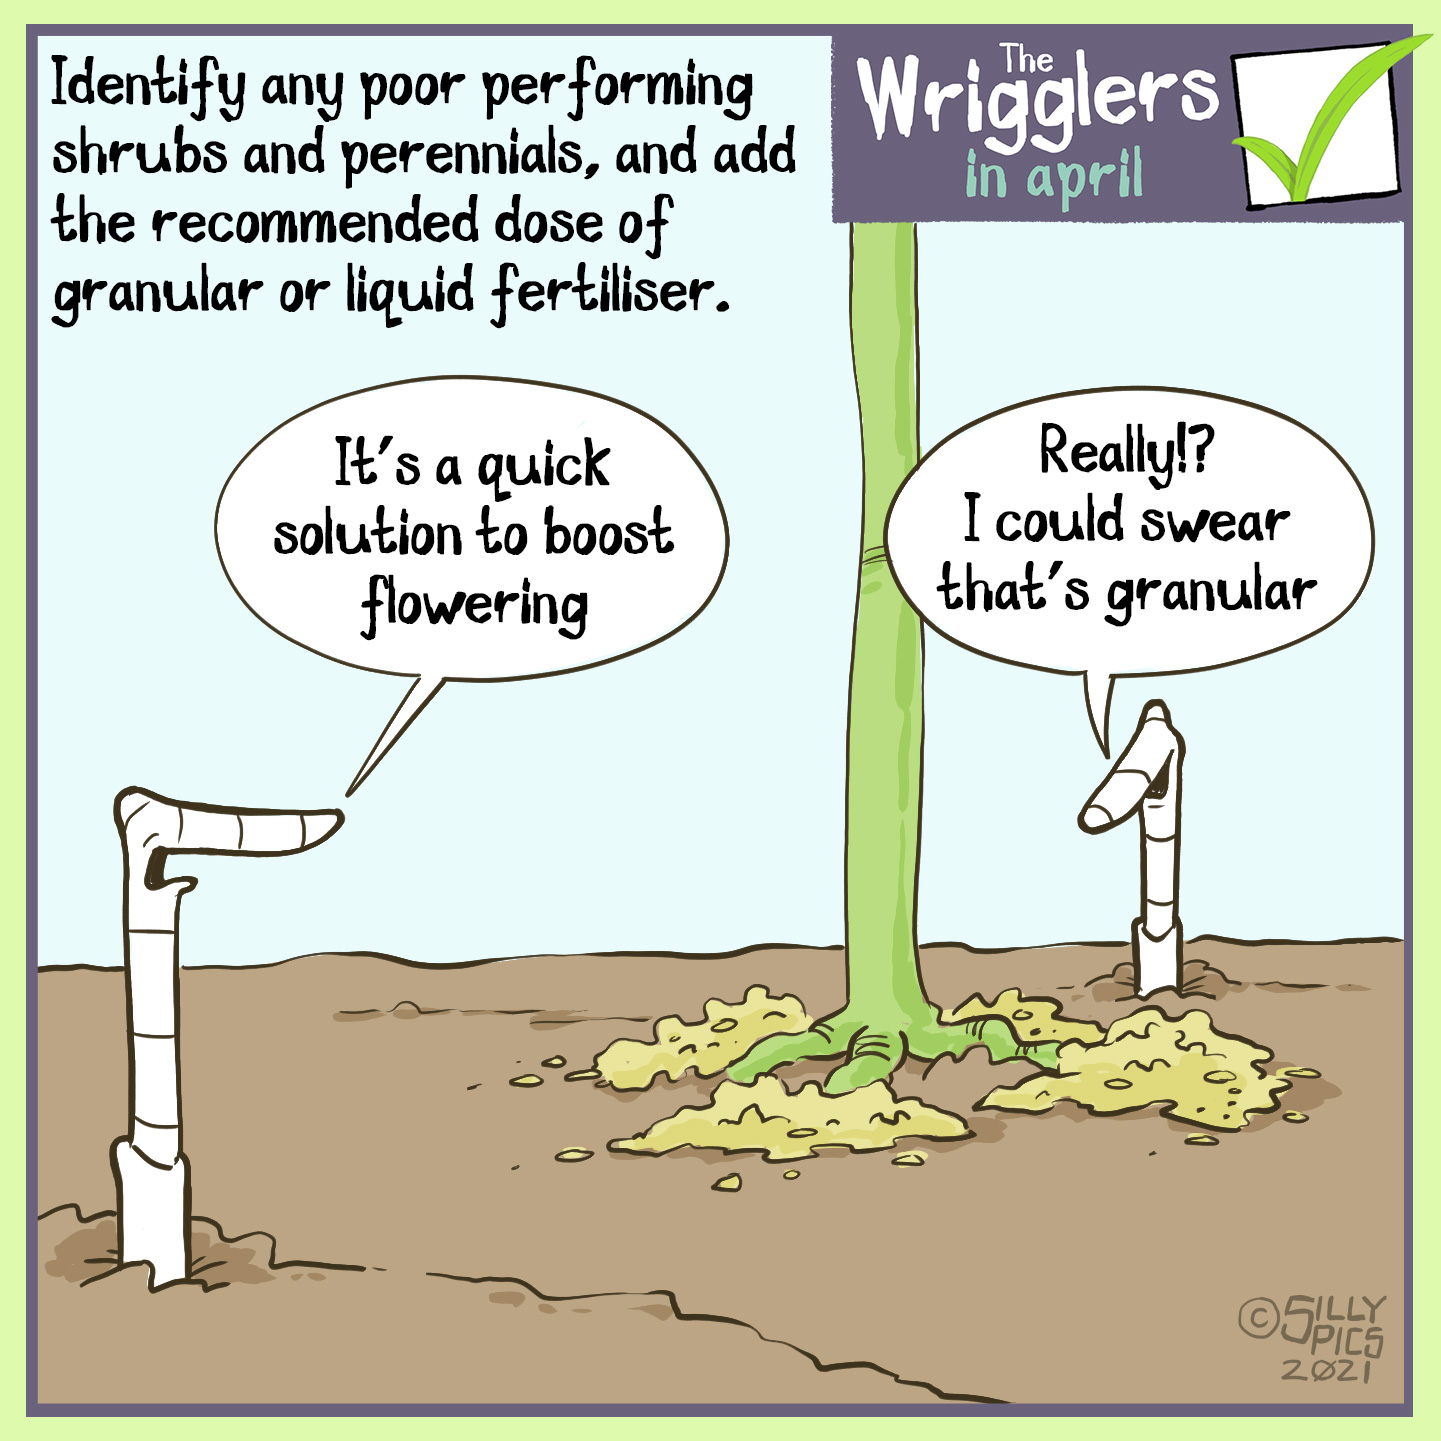 """Identify any poor performing shrubs and perennials, and add the recommended dose of granular or liquid fertiliser. The cartoon shows two worms at the foot of a plant looking at some granular fertiliser sprinkled at the base. One worm says, """"It's a quick solution to boost flowering"""". The other worm says, """" Really? I could swear that's granular."""""""